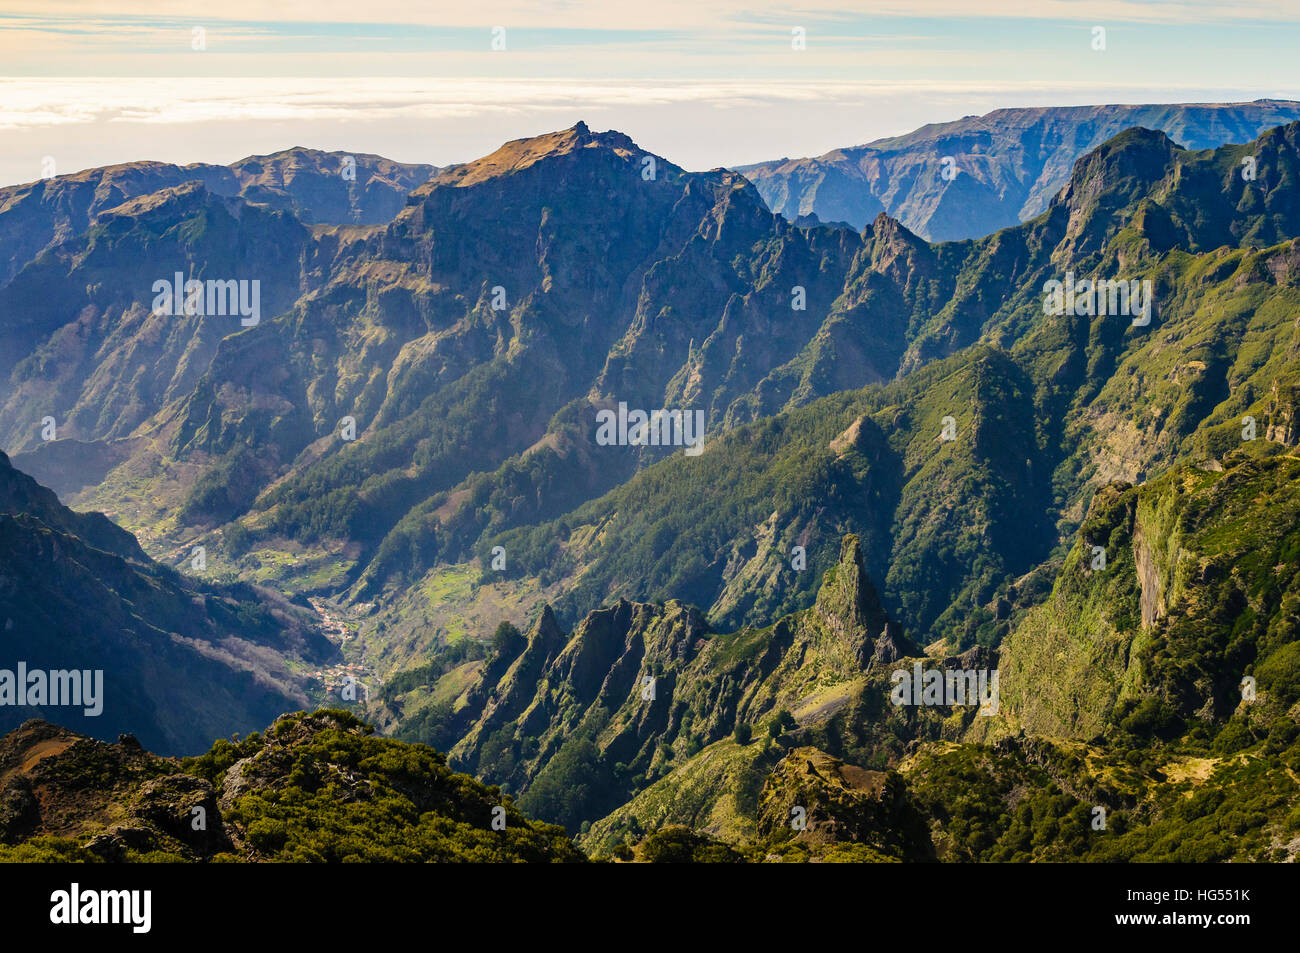 View from Pico Ruivo Madeira's highest summit with Curral das Freiras far below - Stock Image